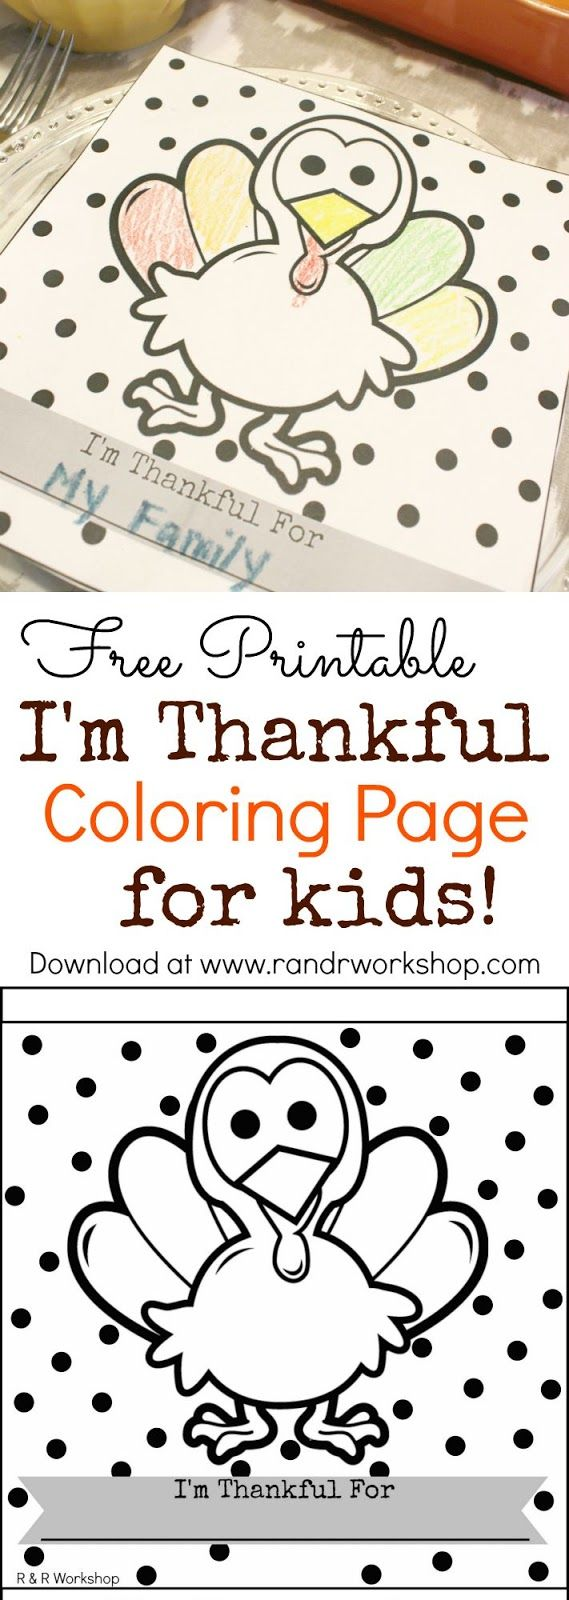 Kids Thanksgiving Coloring Page (Free Printable)   Pared ...